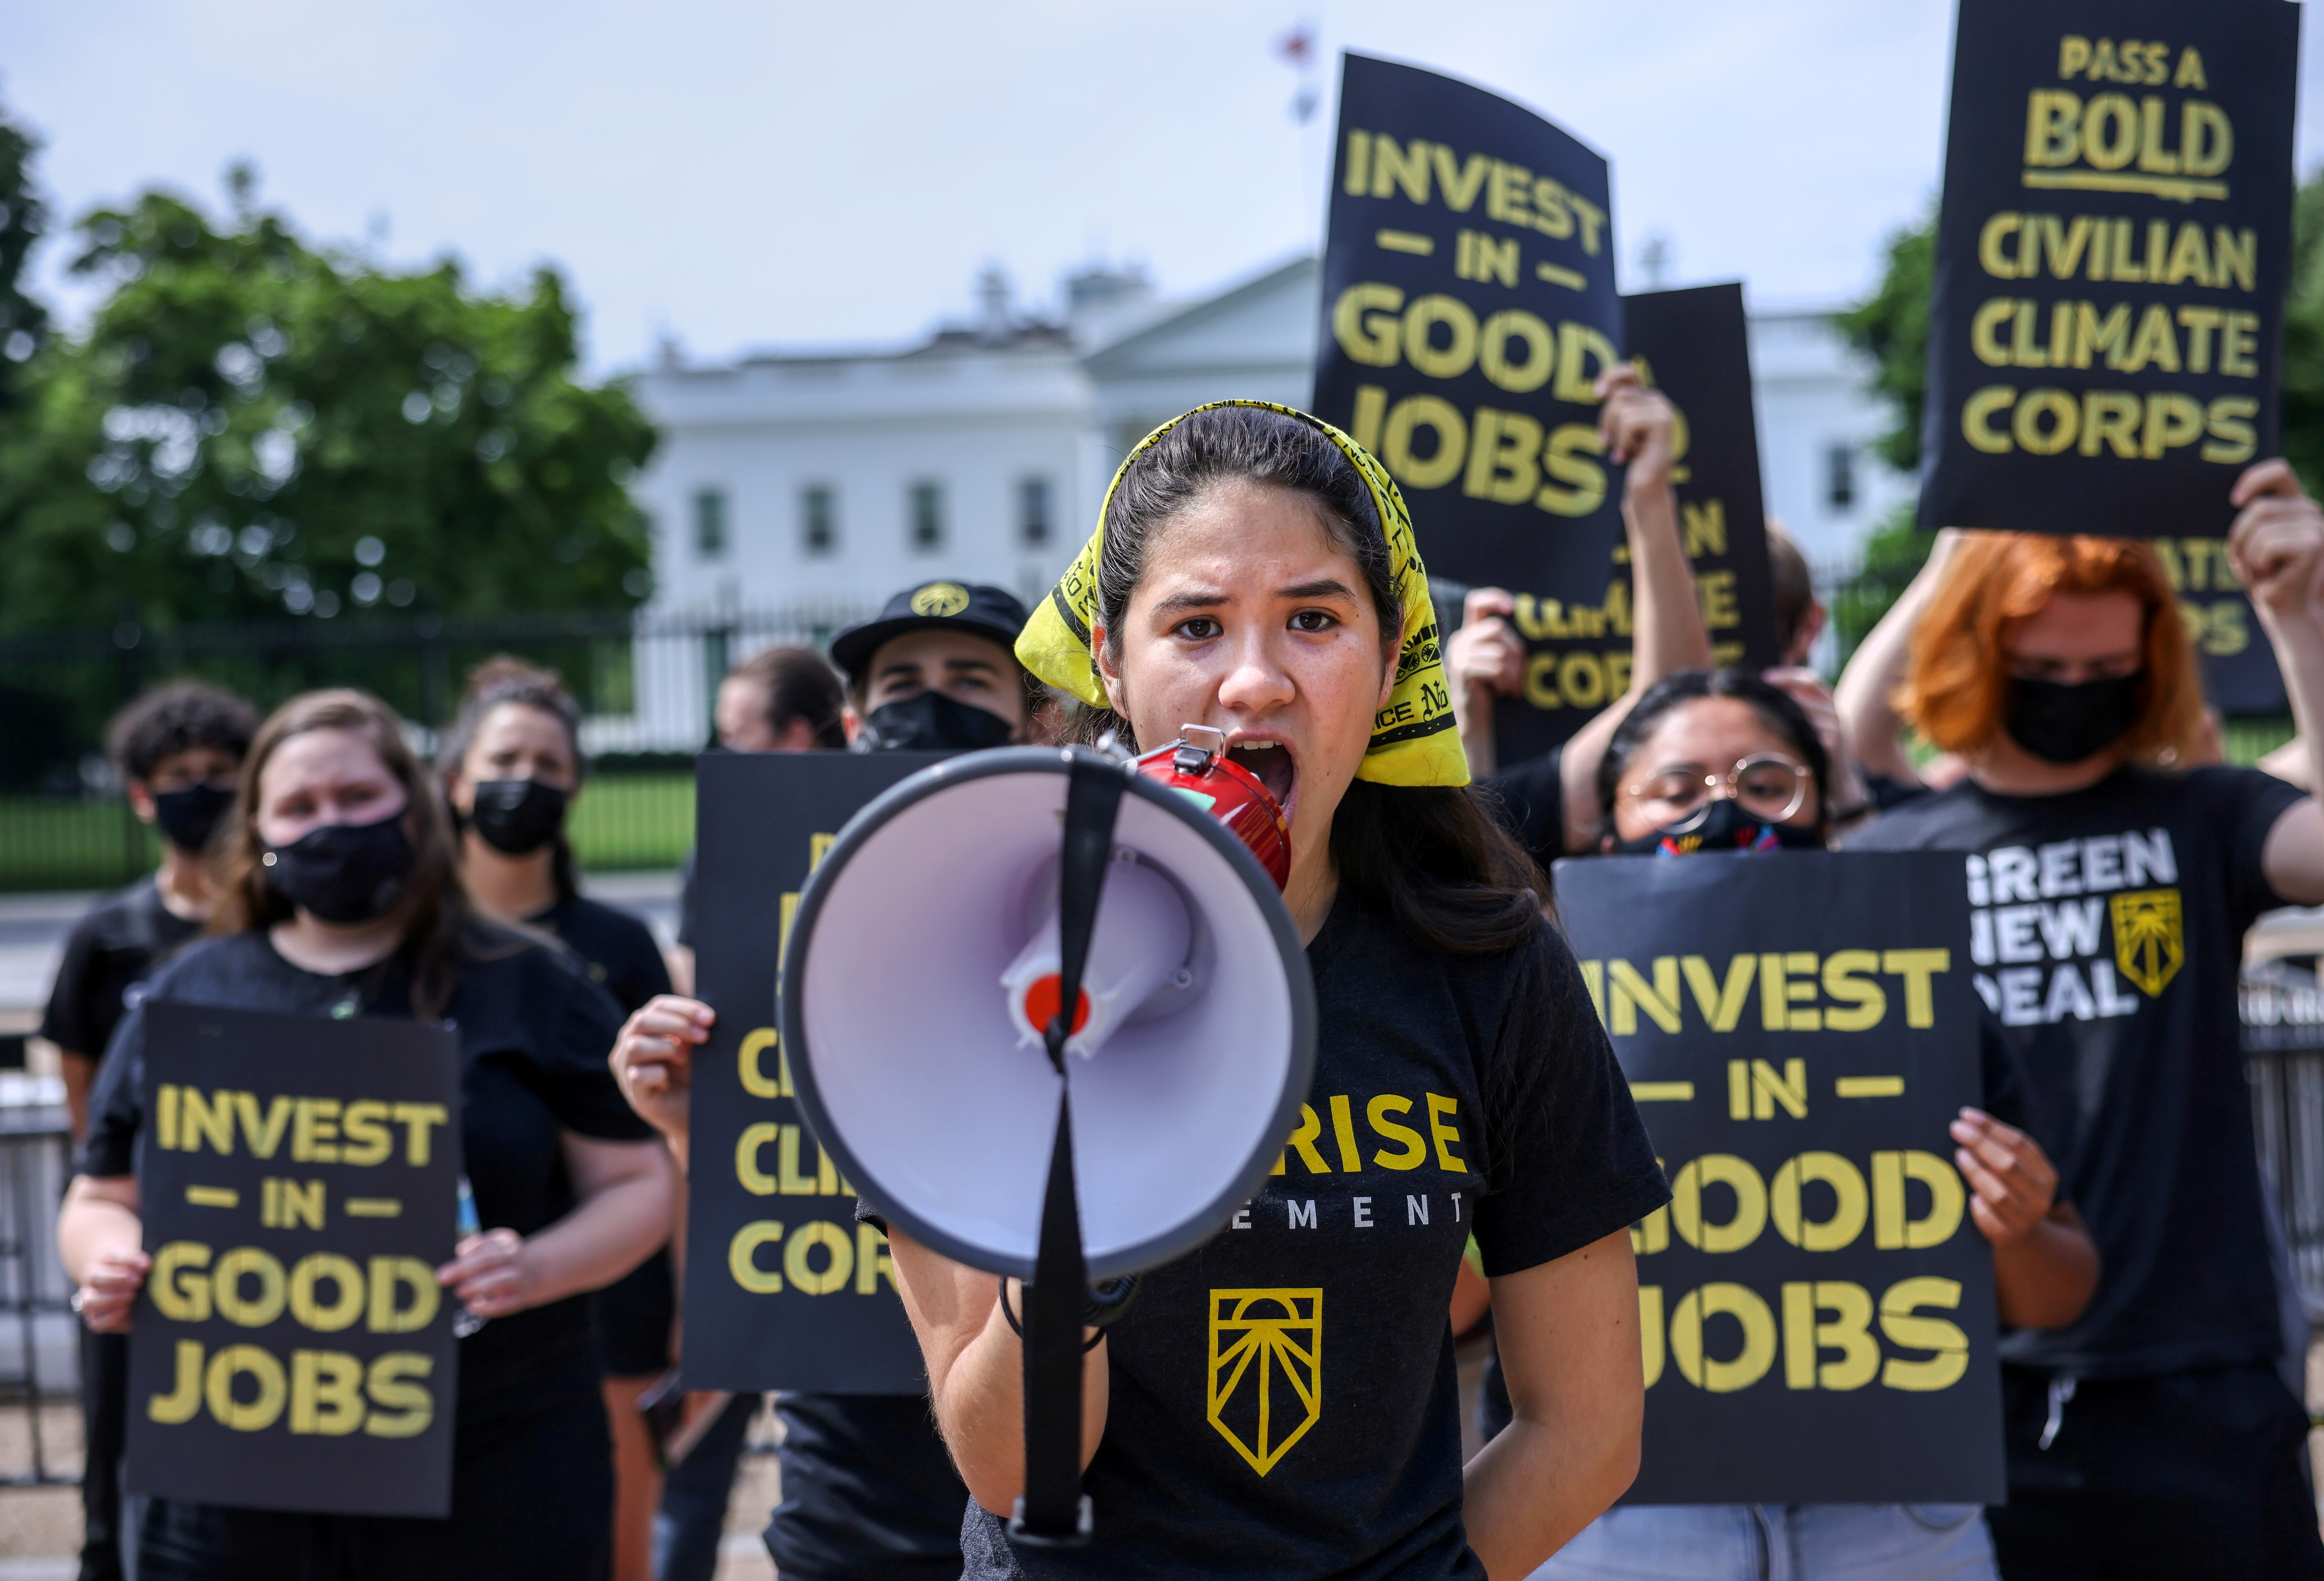 Audrey Lin chants during a demonstration by the Sunrise Movement outside the White House demanding action on climate change and green jobs in Washington, U.S., June 4, 2021.